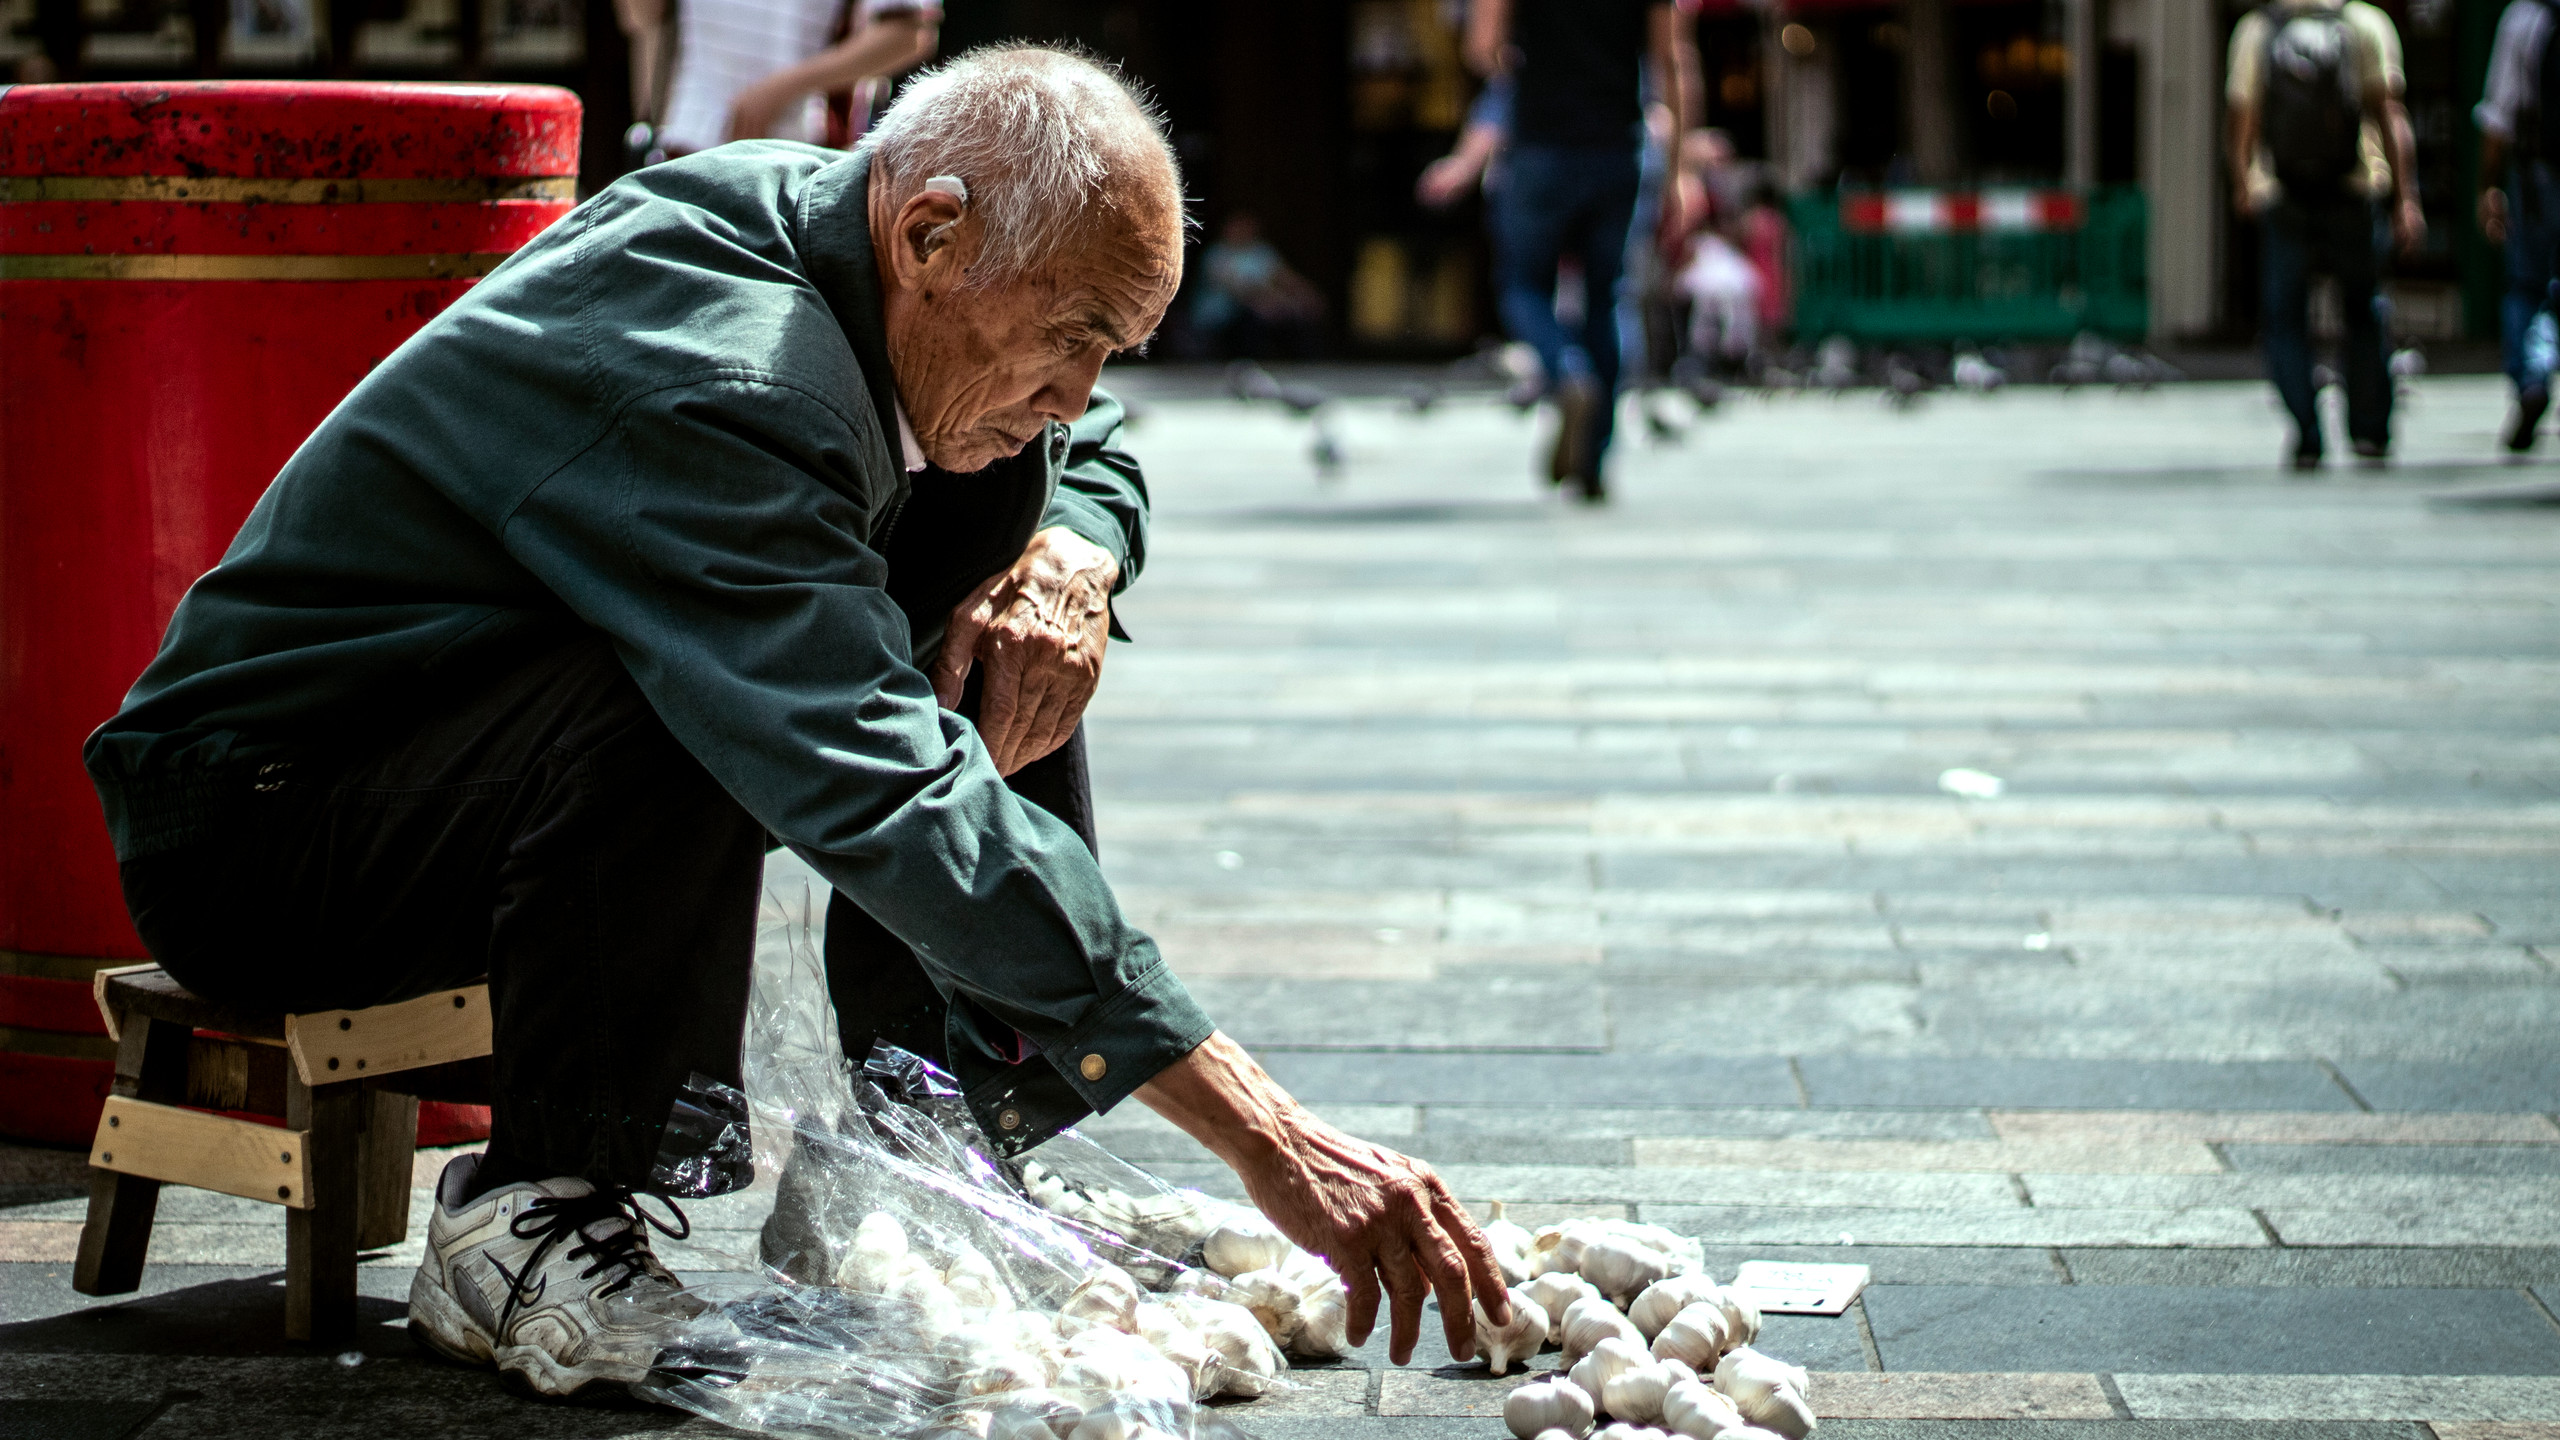 A local man selling cloves of garlic